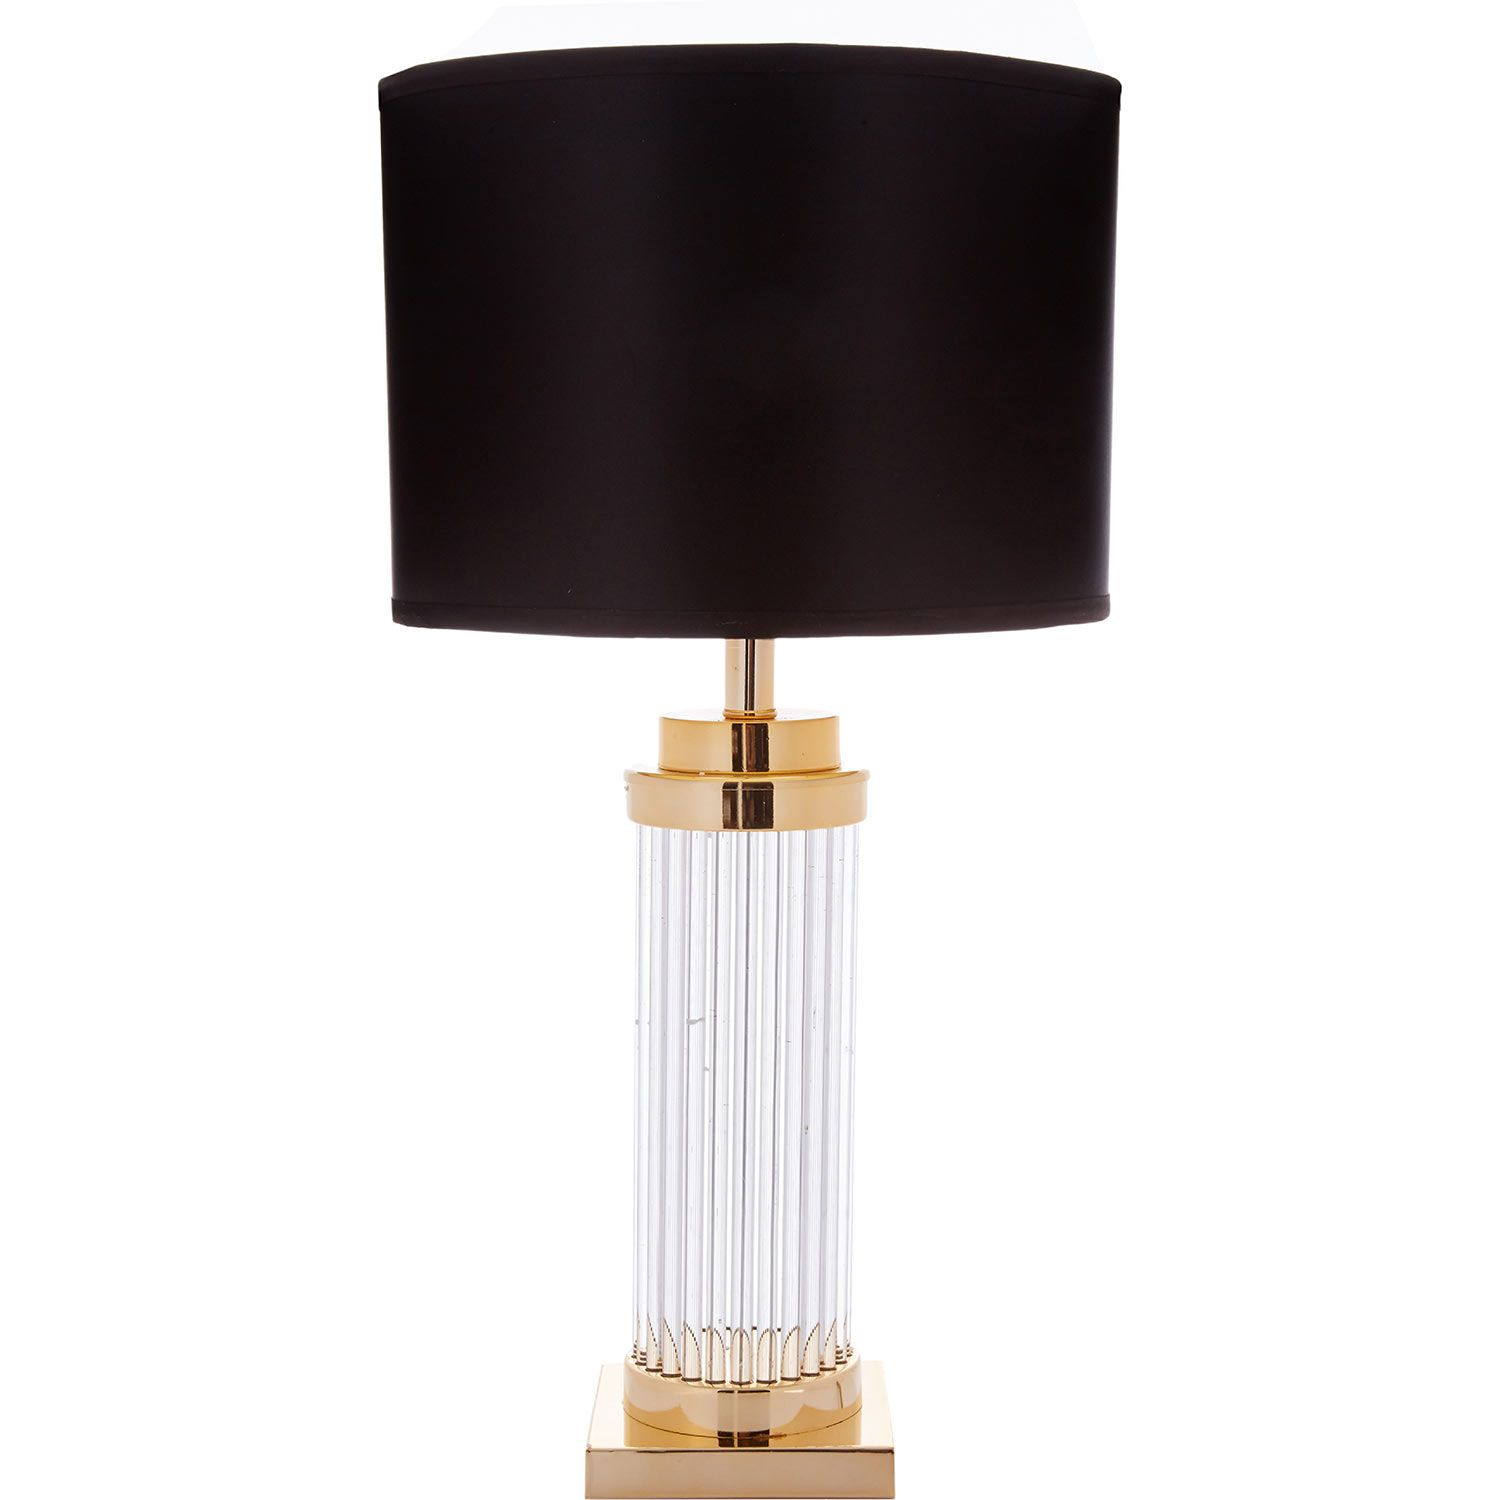 Black U0026 Gold Tone Large Crystal Table Lamp   TK Maxx